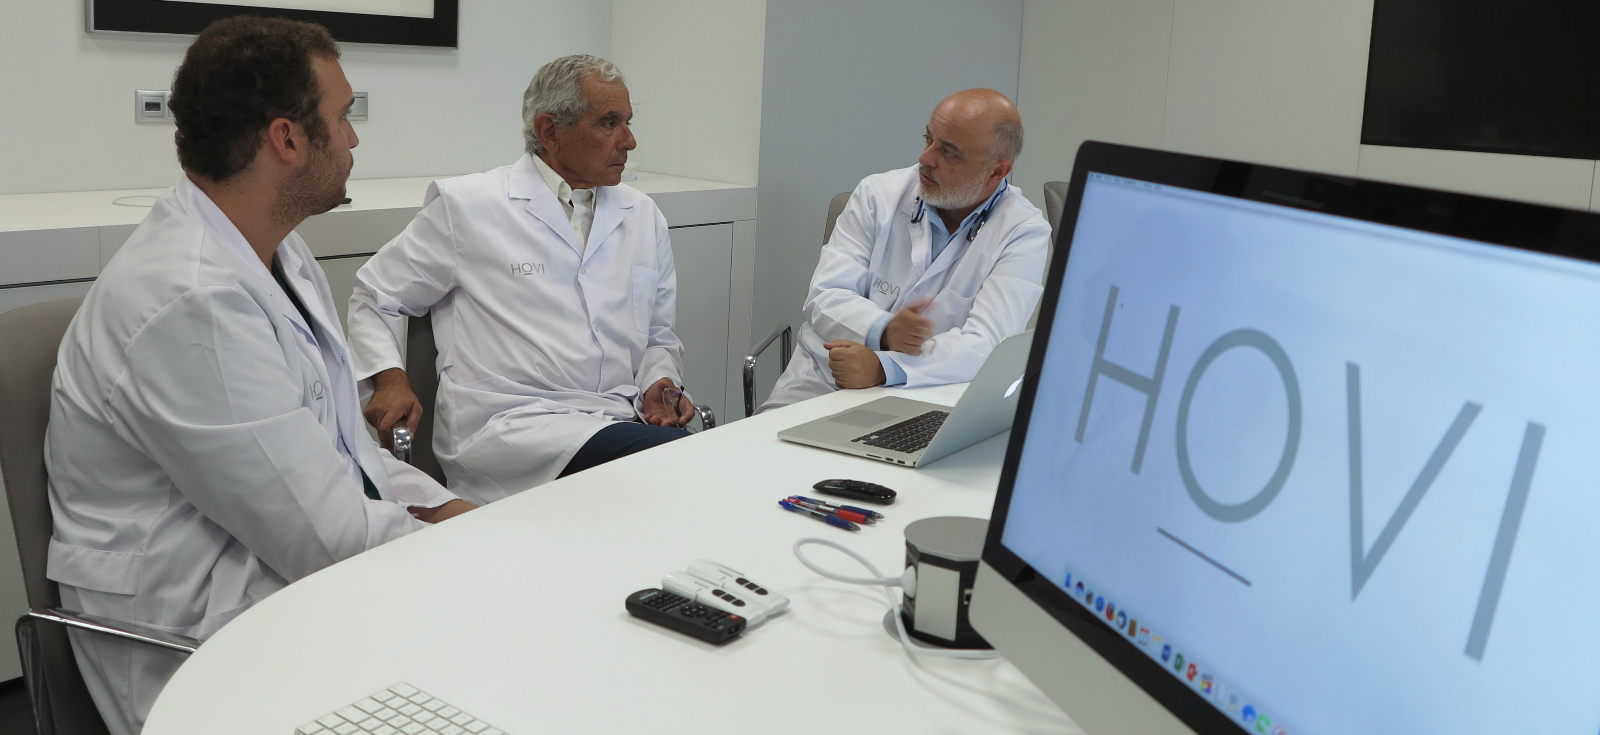 HOVI-hospital-oncologico-virtual-internacional